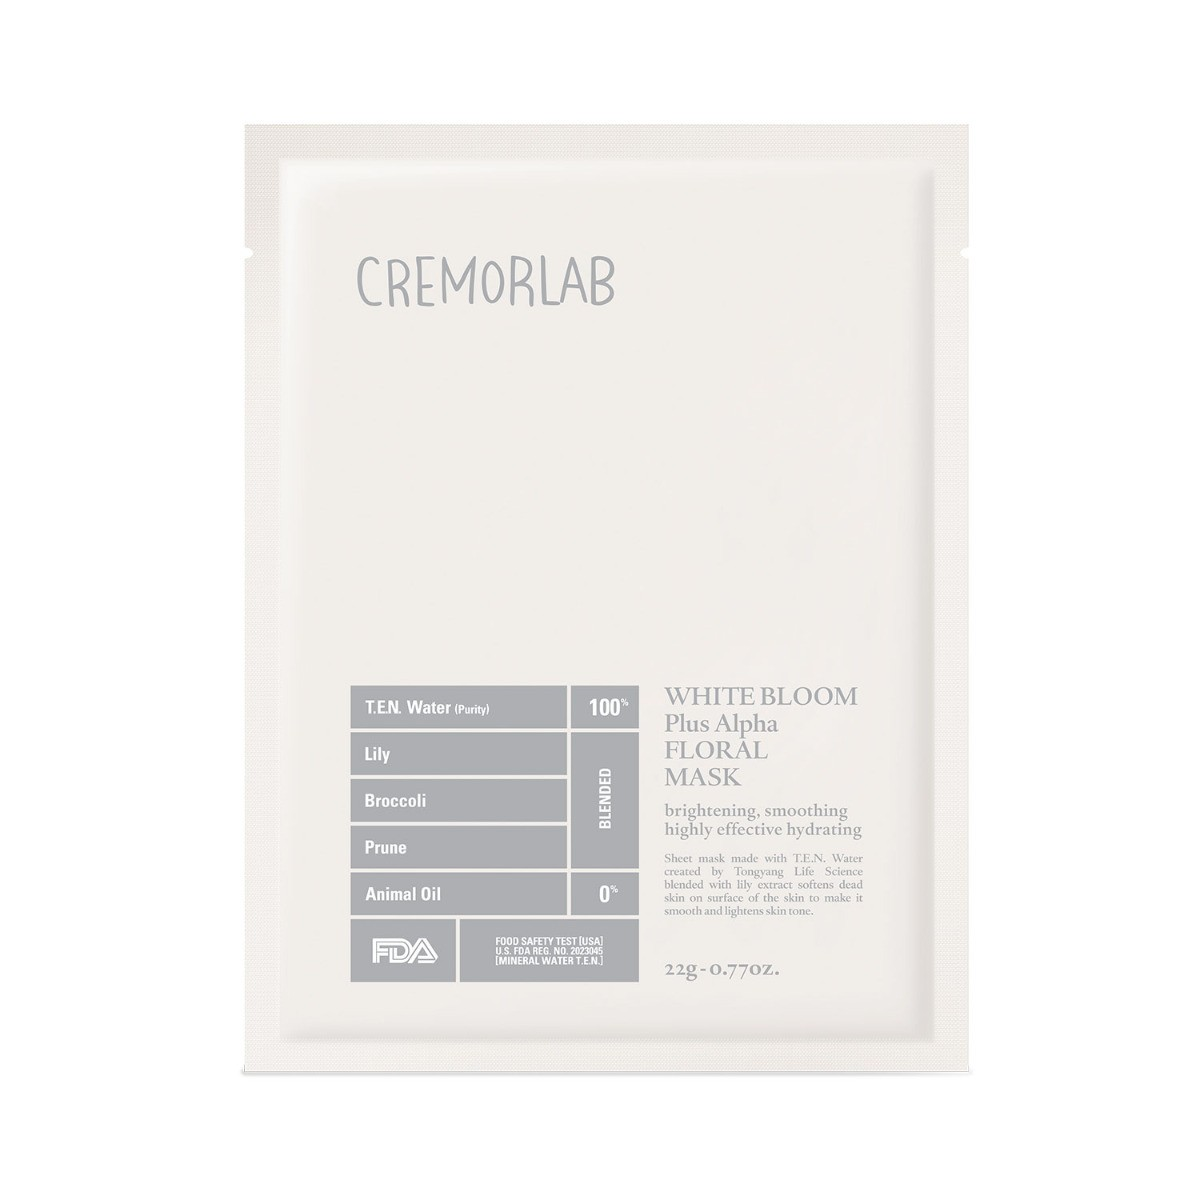 Cremorlab White Bloom